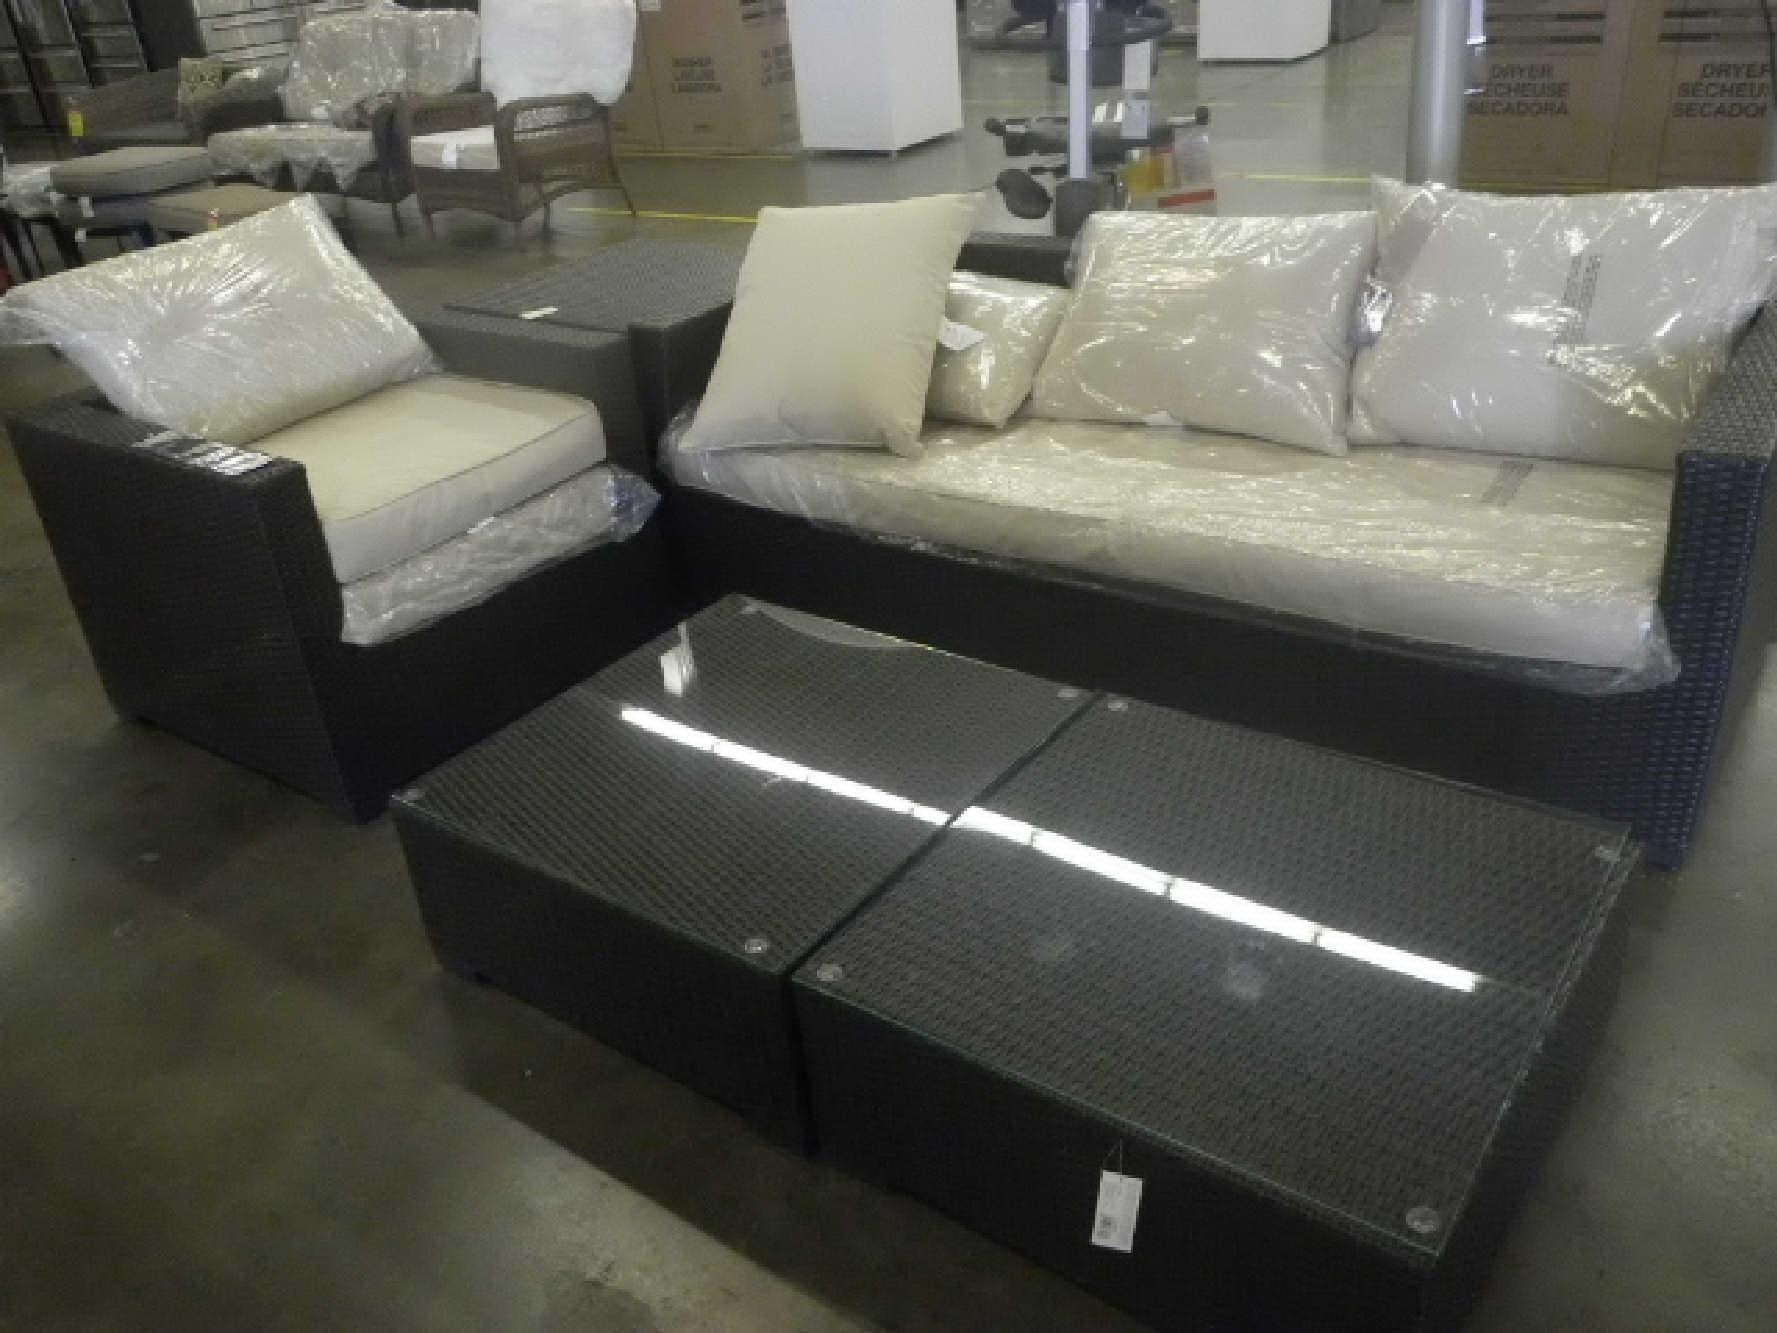 75 Awesome Sears Outlet Sofas Home Design | Hoozoo Within Florence Grand Sofas (Image 4 of 20)